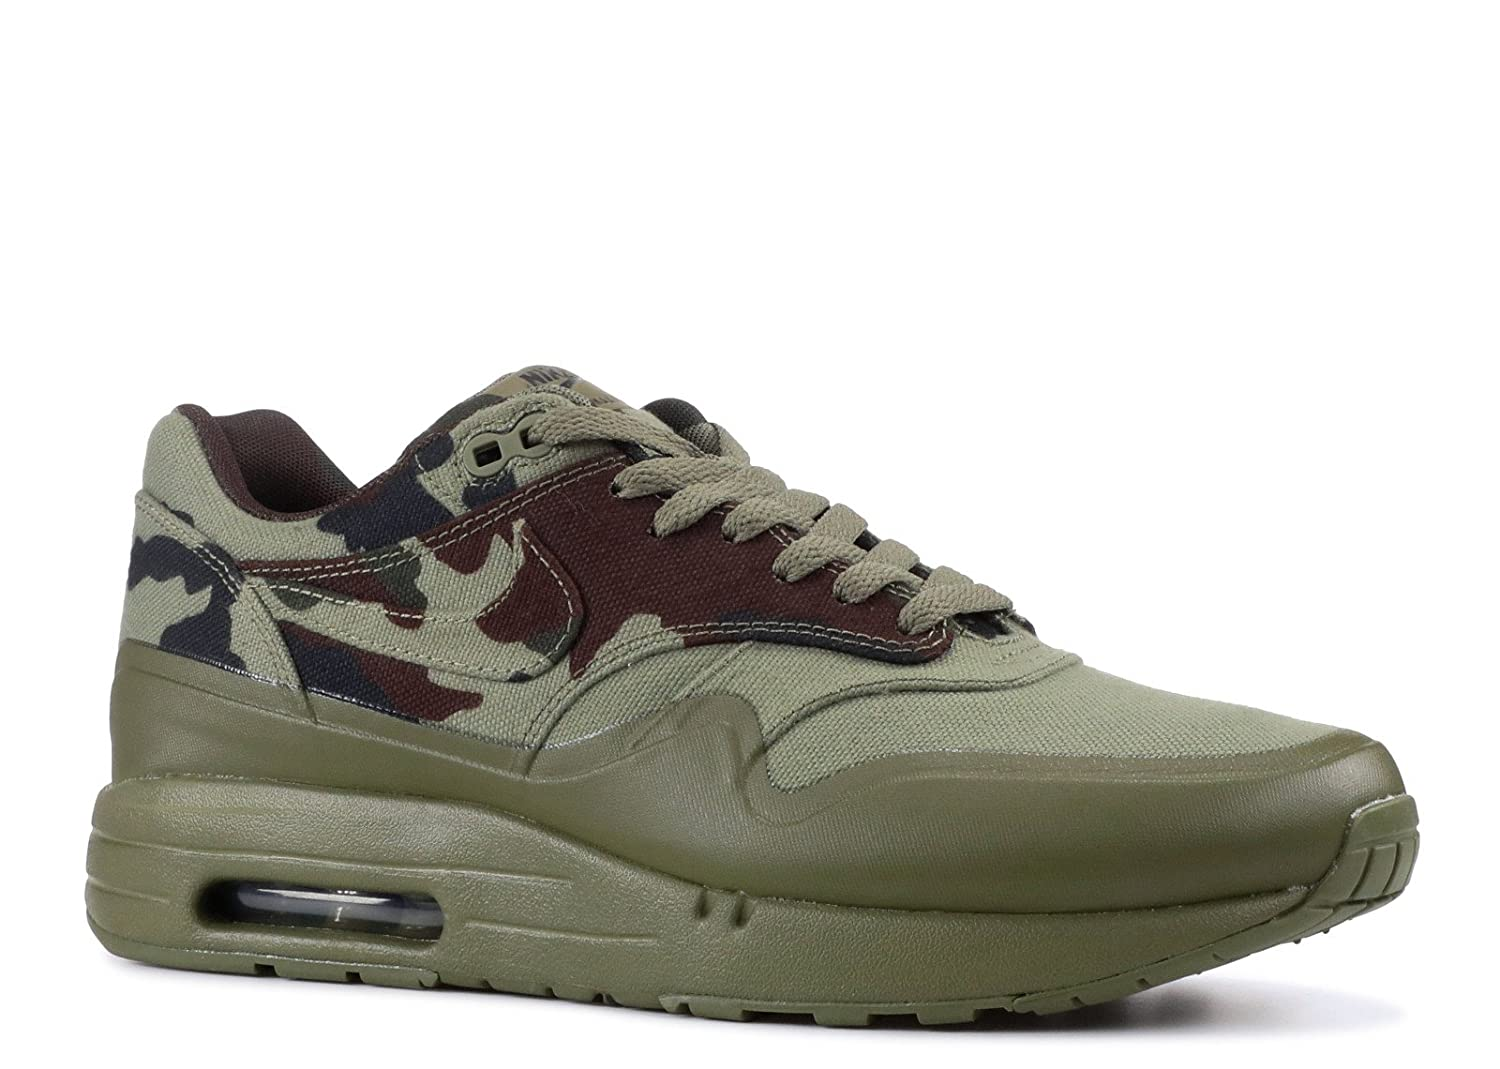 nike france air maxim 1   sp camo - france nike (607473-200) 72c645